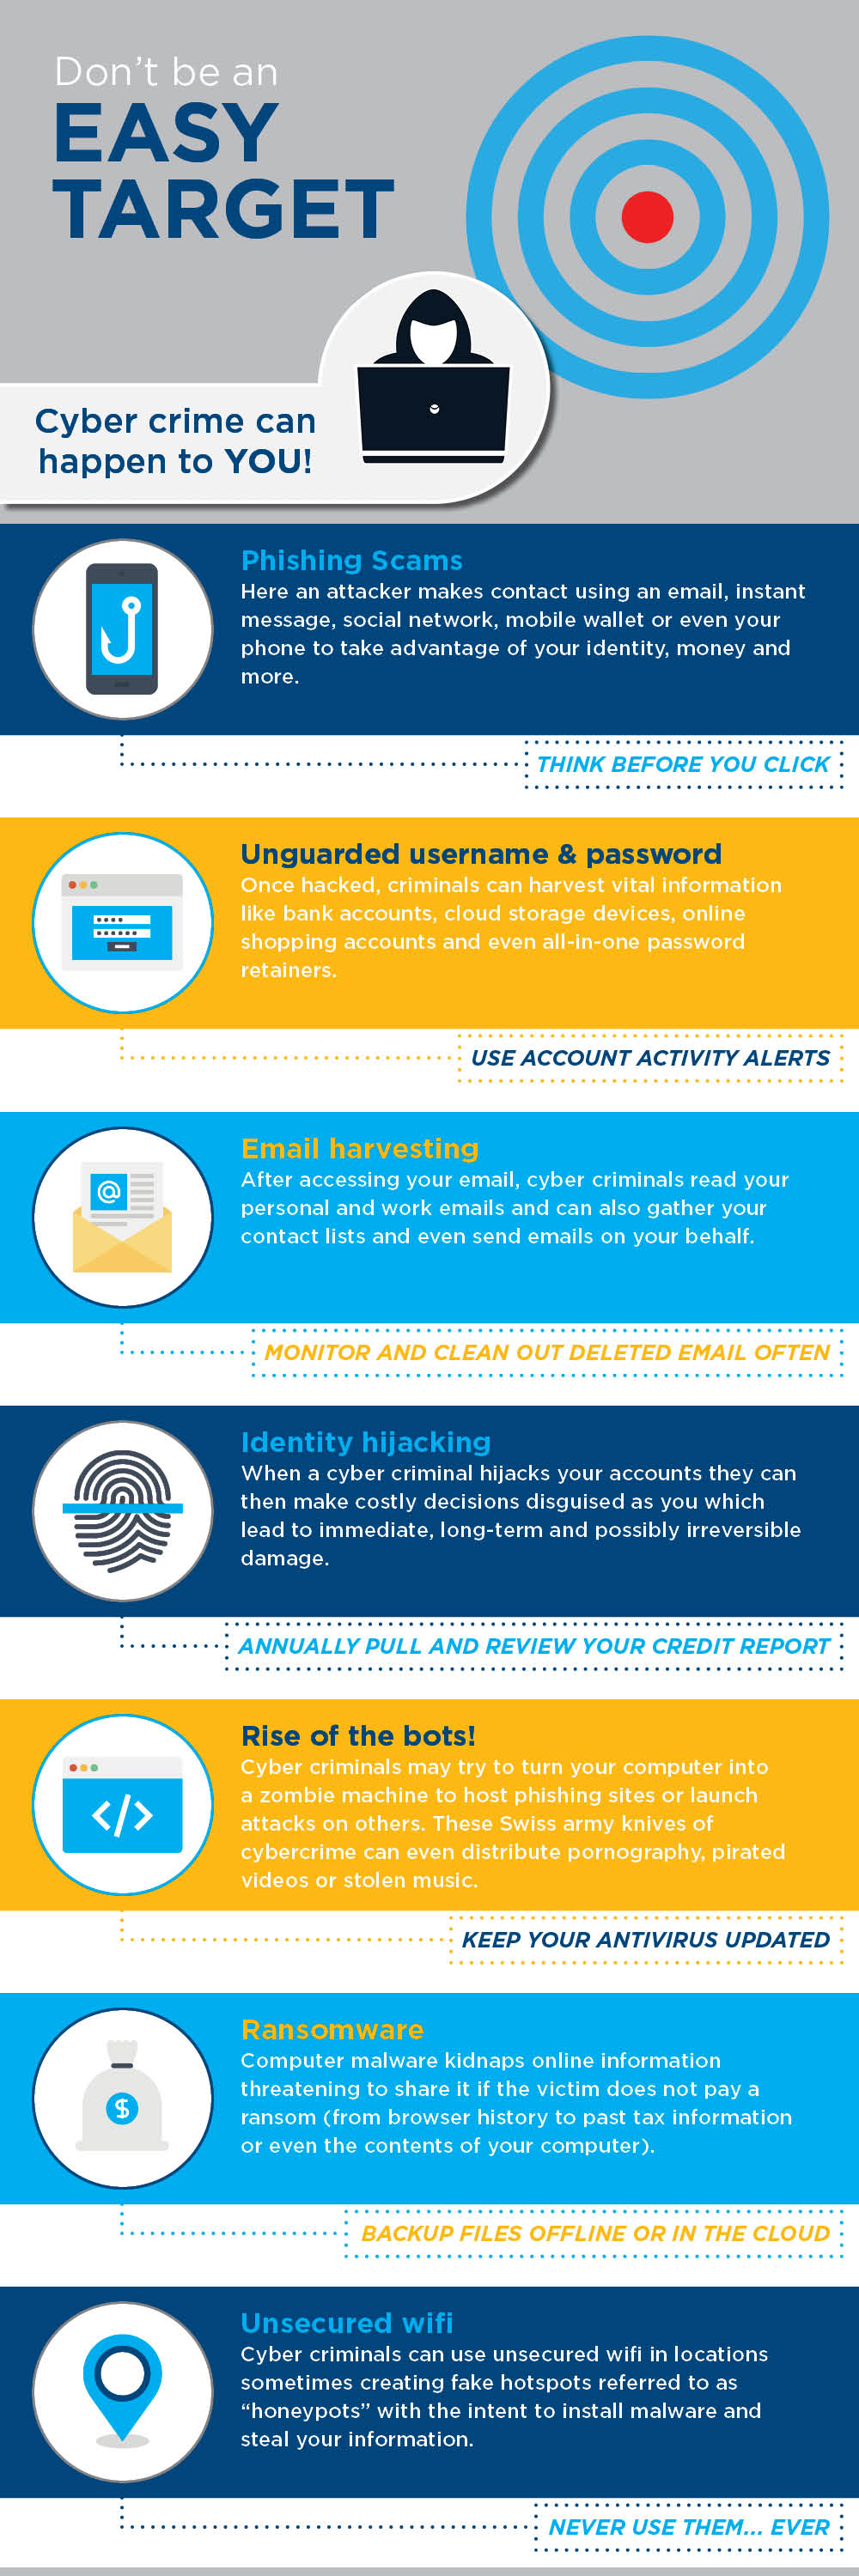 Infographic on being cyber aware